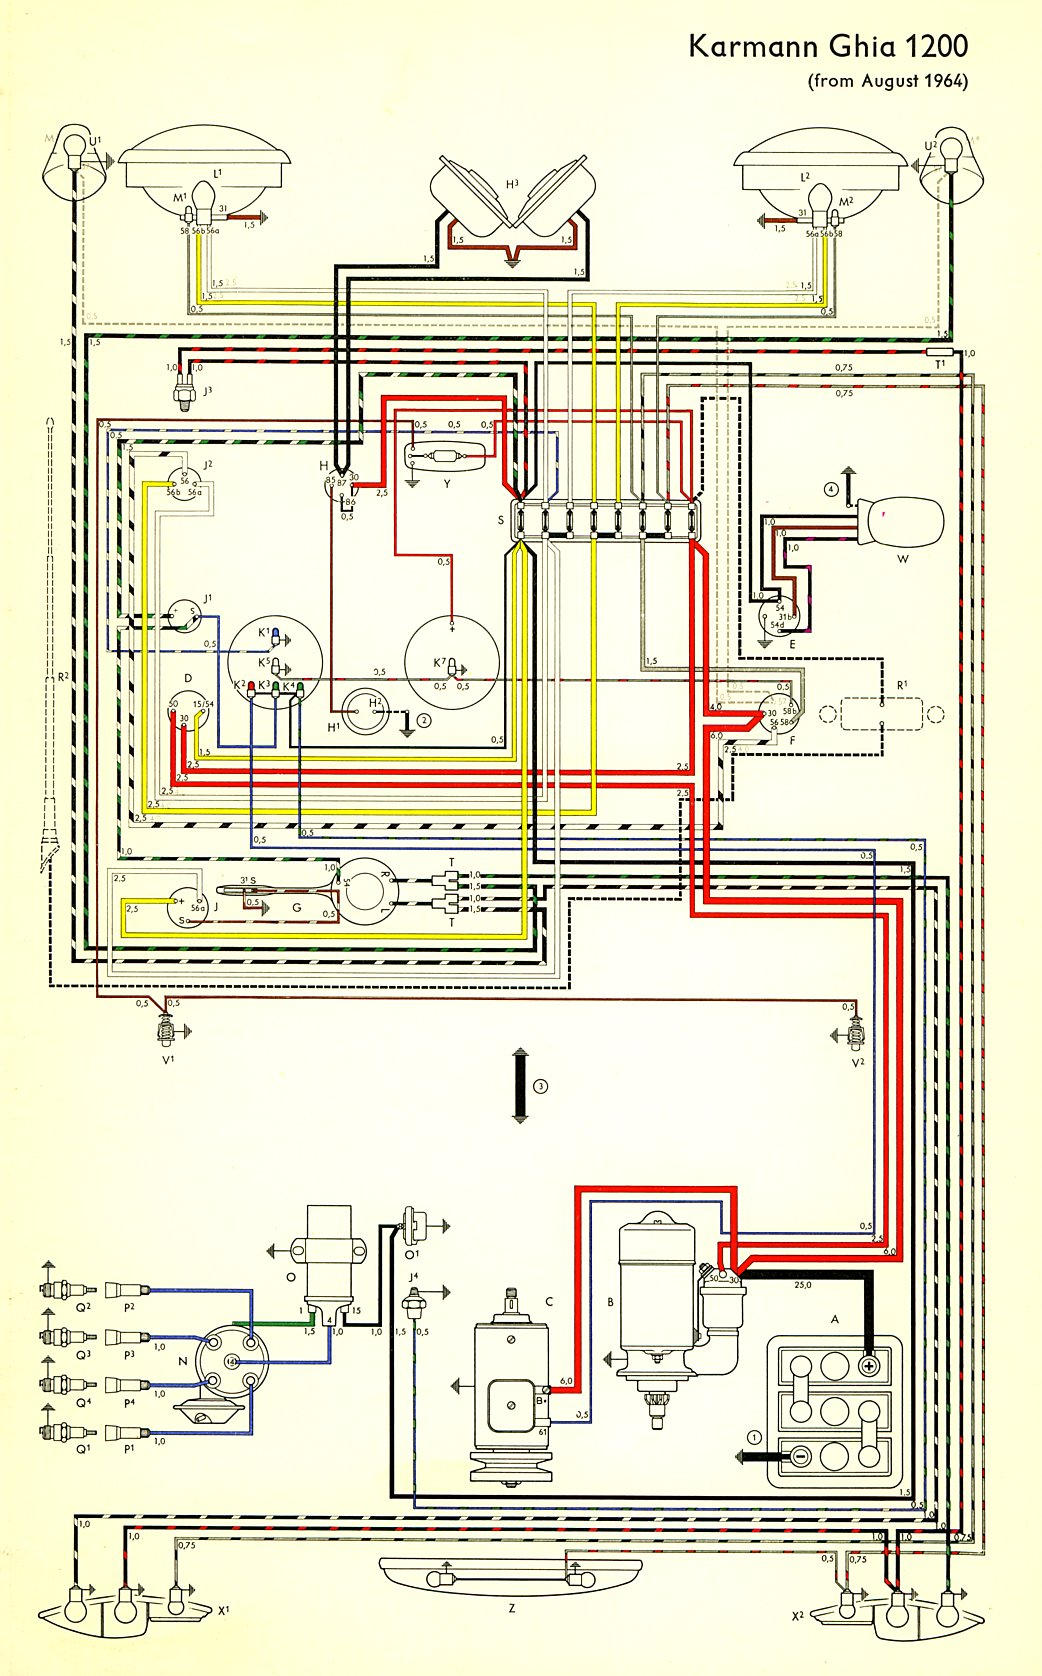 1972 Pontiac Catalina Wiring Diagram Diagrams 1974 Html Auto Engine 1968 Camaro 1971 Firebird